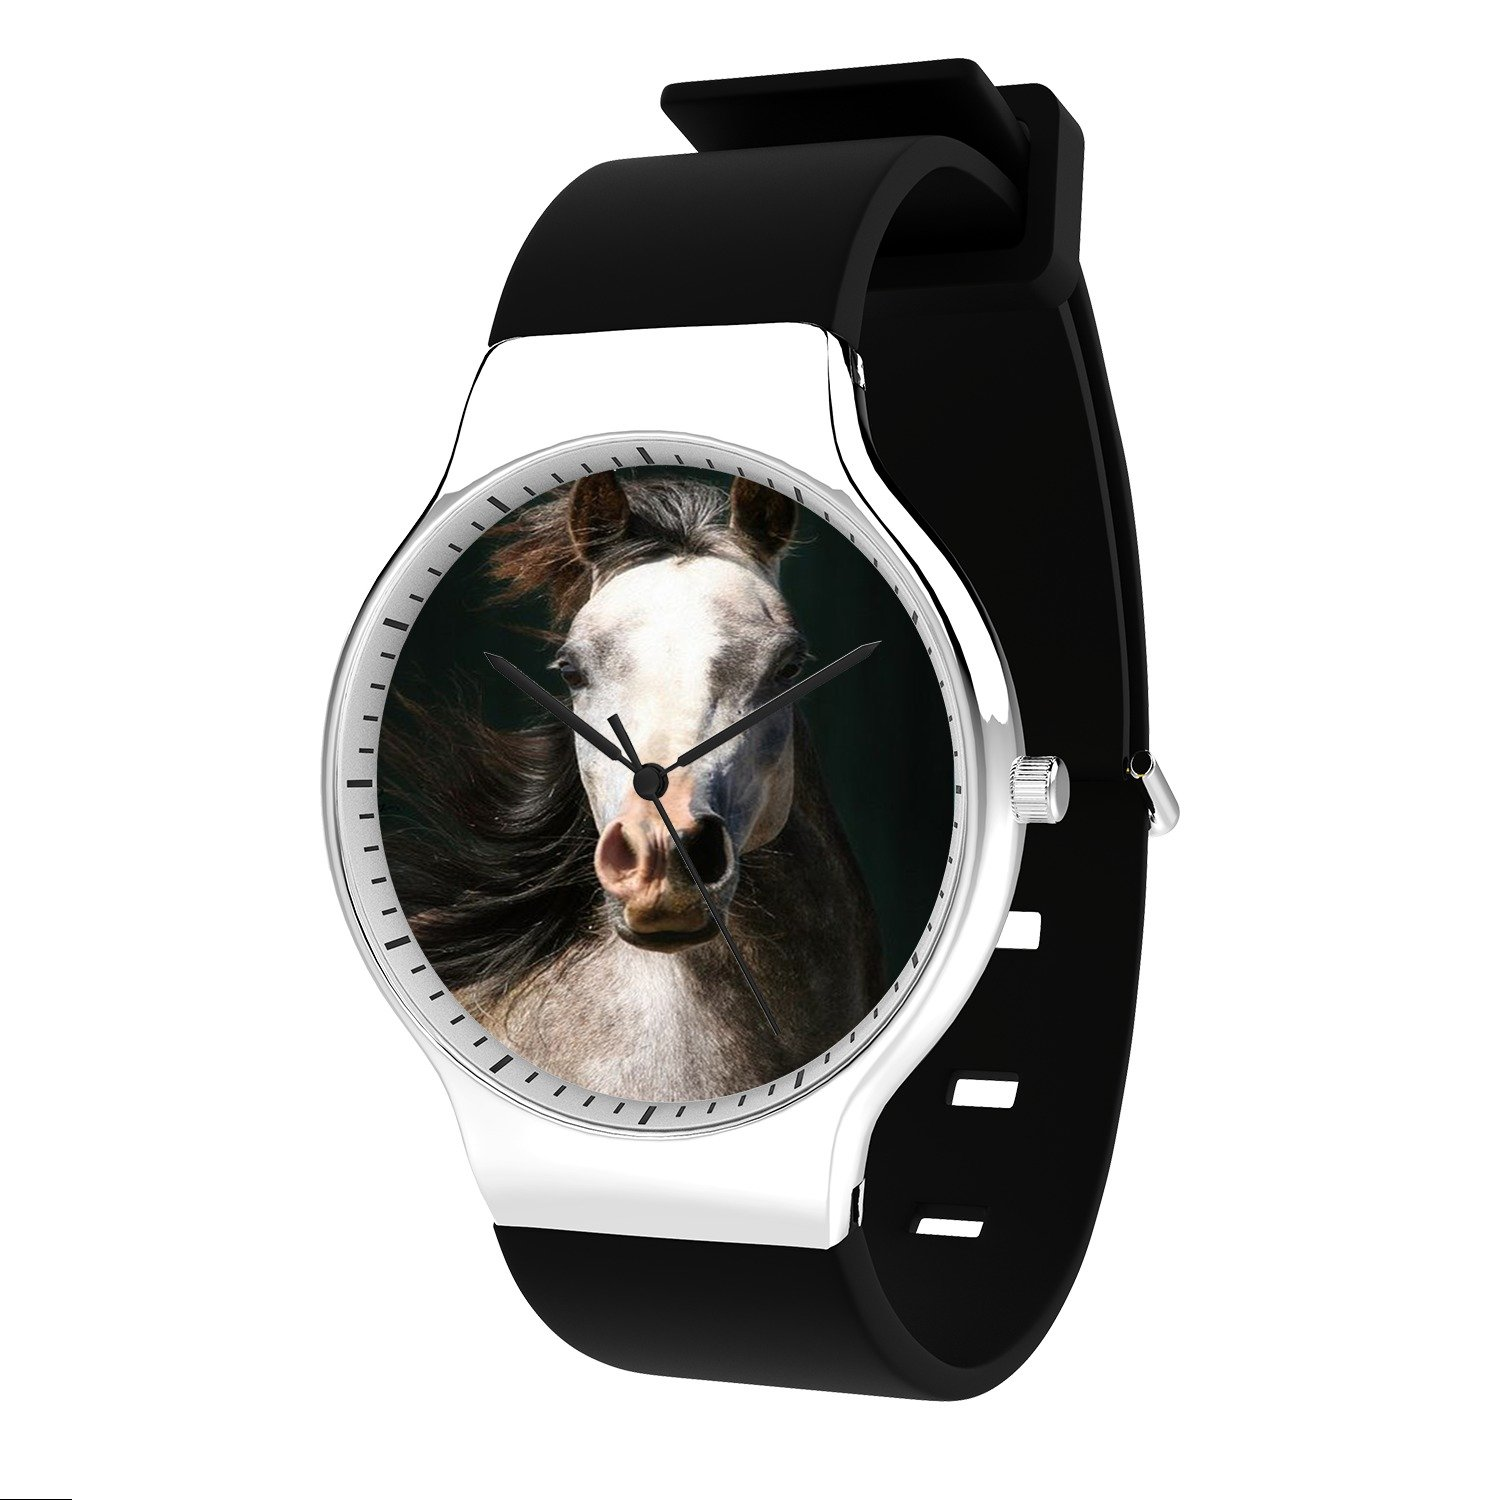 FELOOWSE Arabian Horse Watch Men'S Quartz Watches, Minimalist Slim Japanese Quartz Youth Silicone Watches, Fashion Practical Waterproof Boys Watch Customized Watches